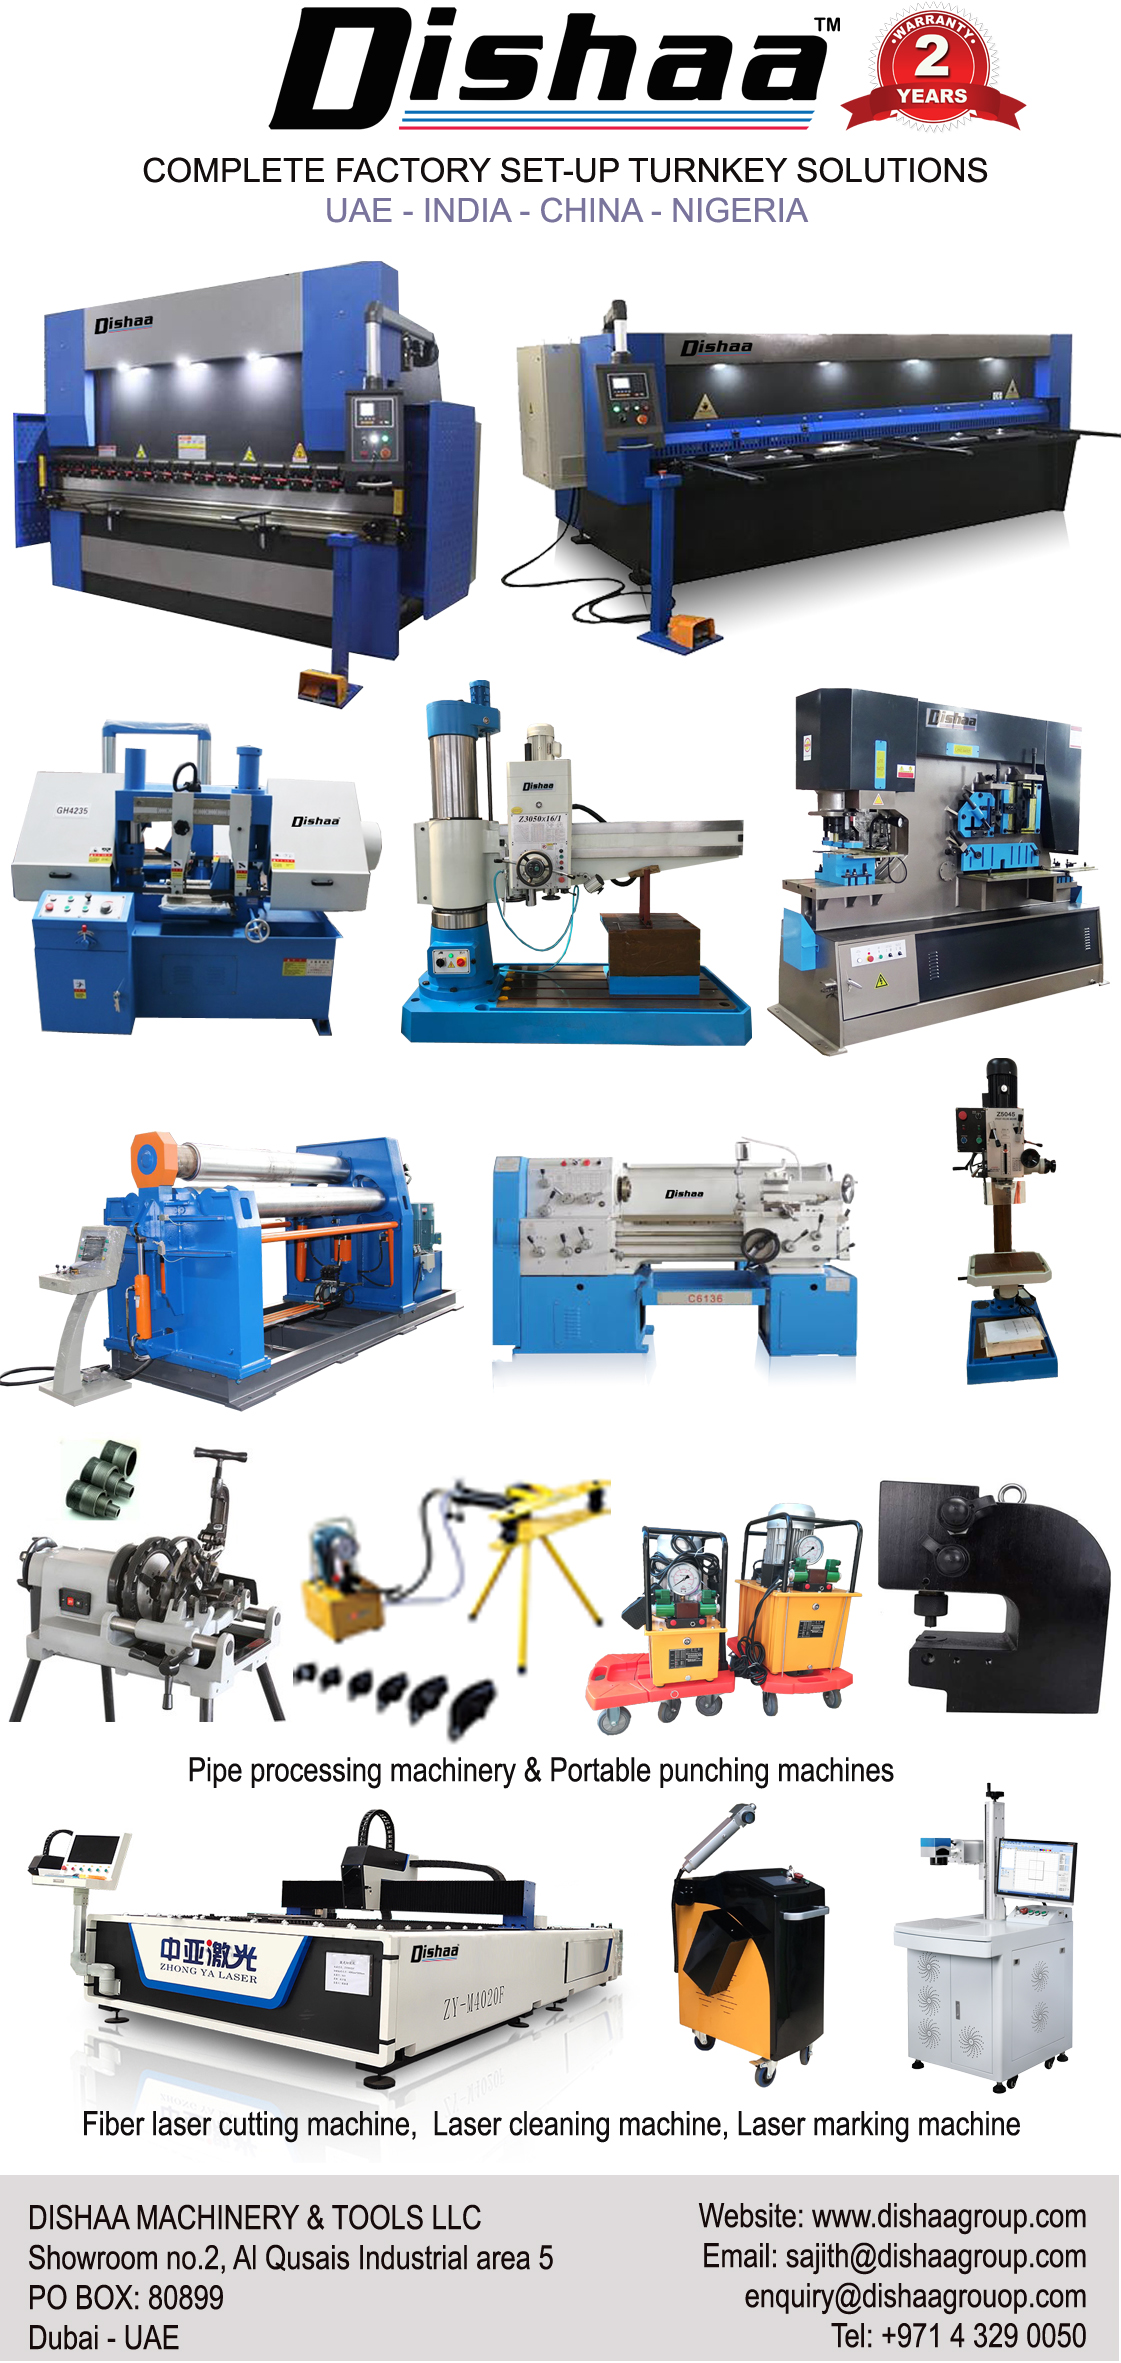 HEAVY FABRICATION MACHINES